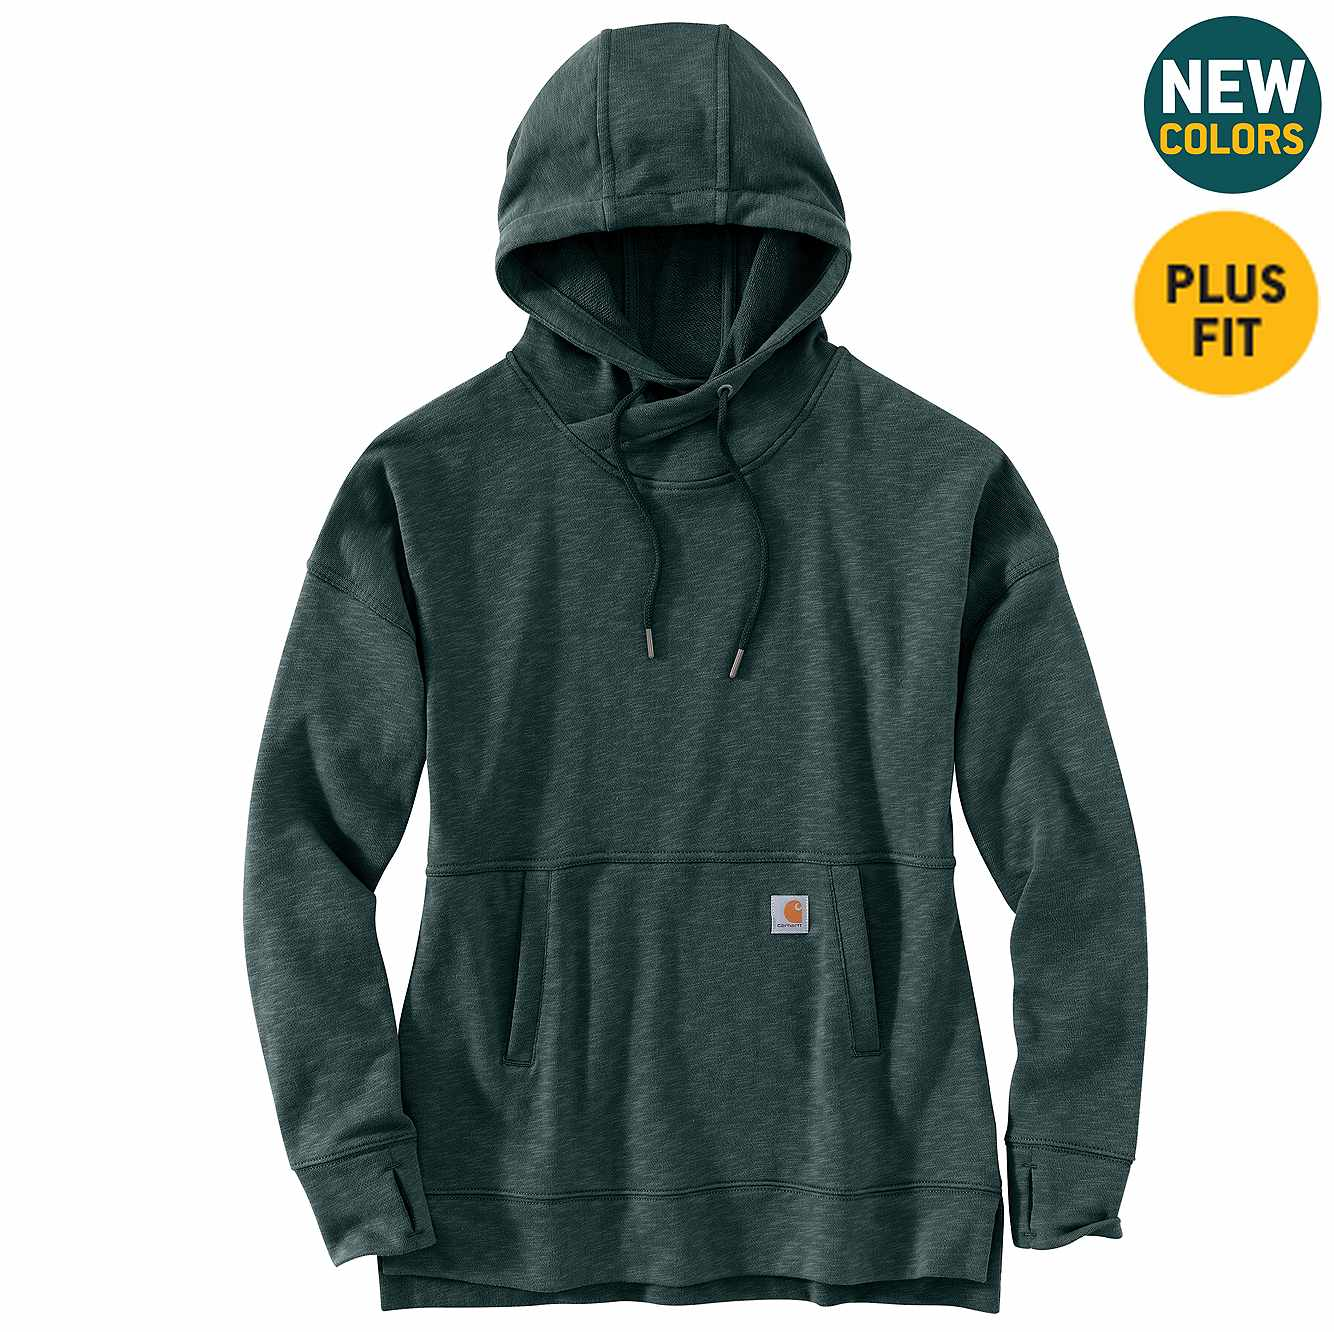 Picture of Newberry Hoodie in Fog Green